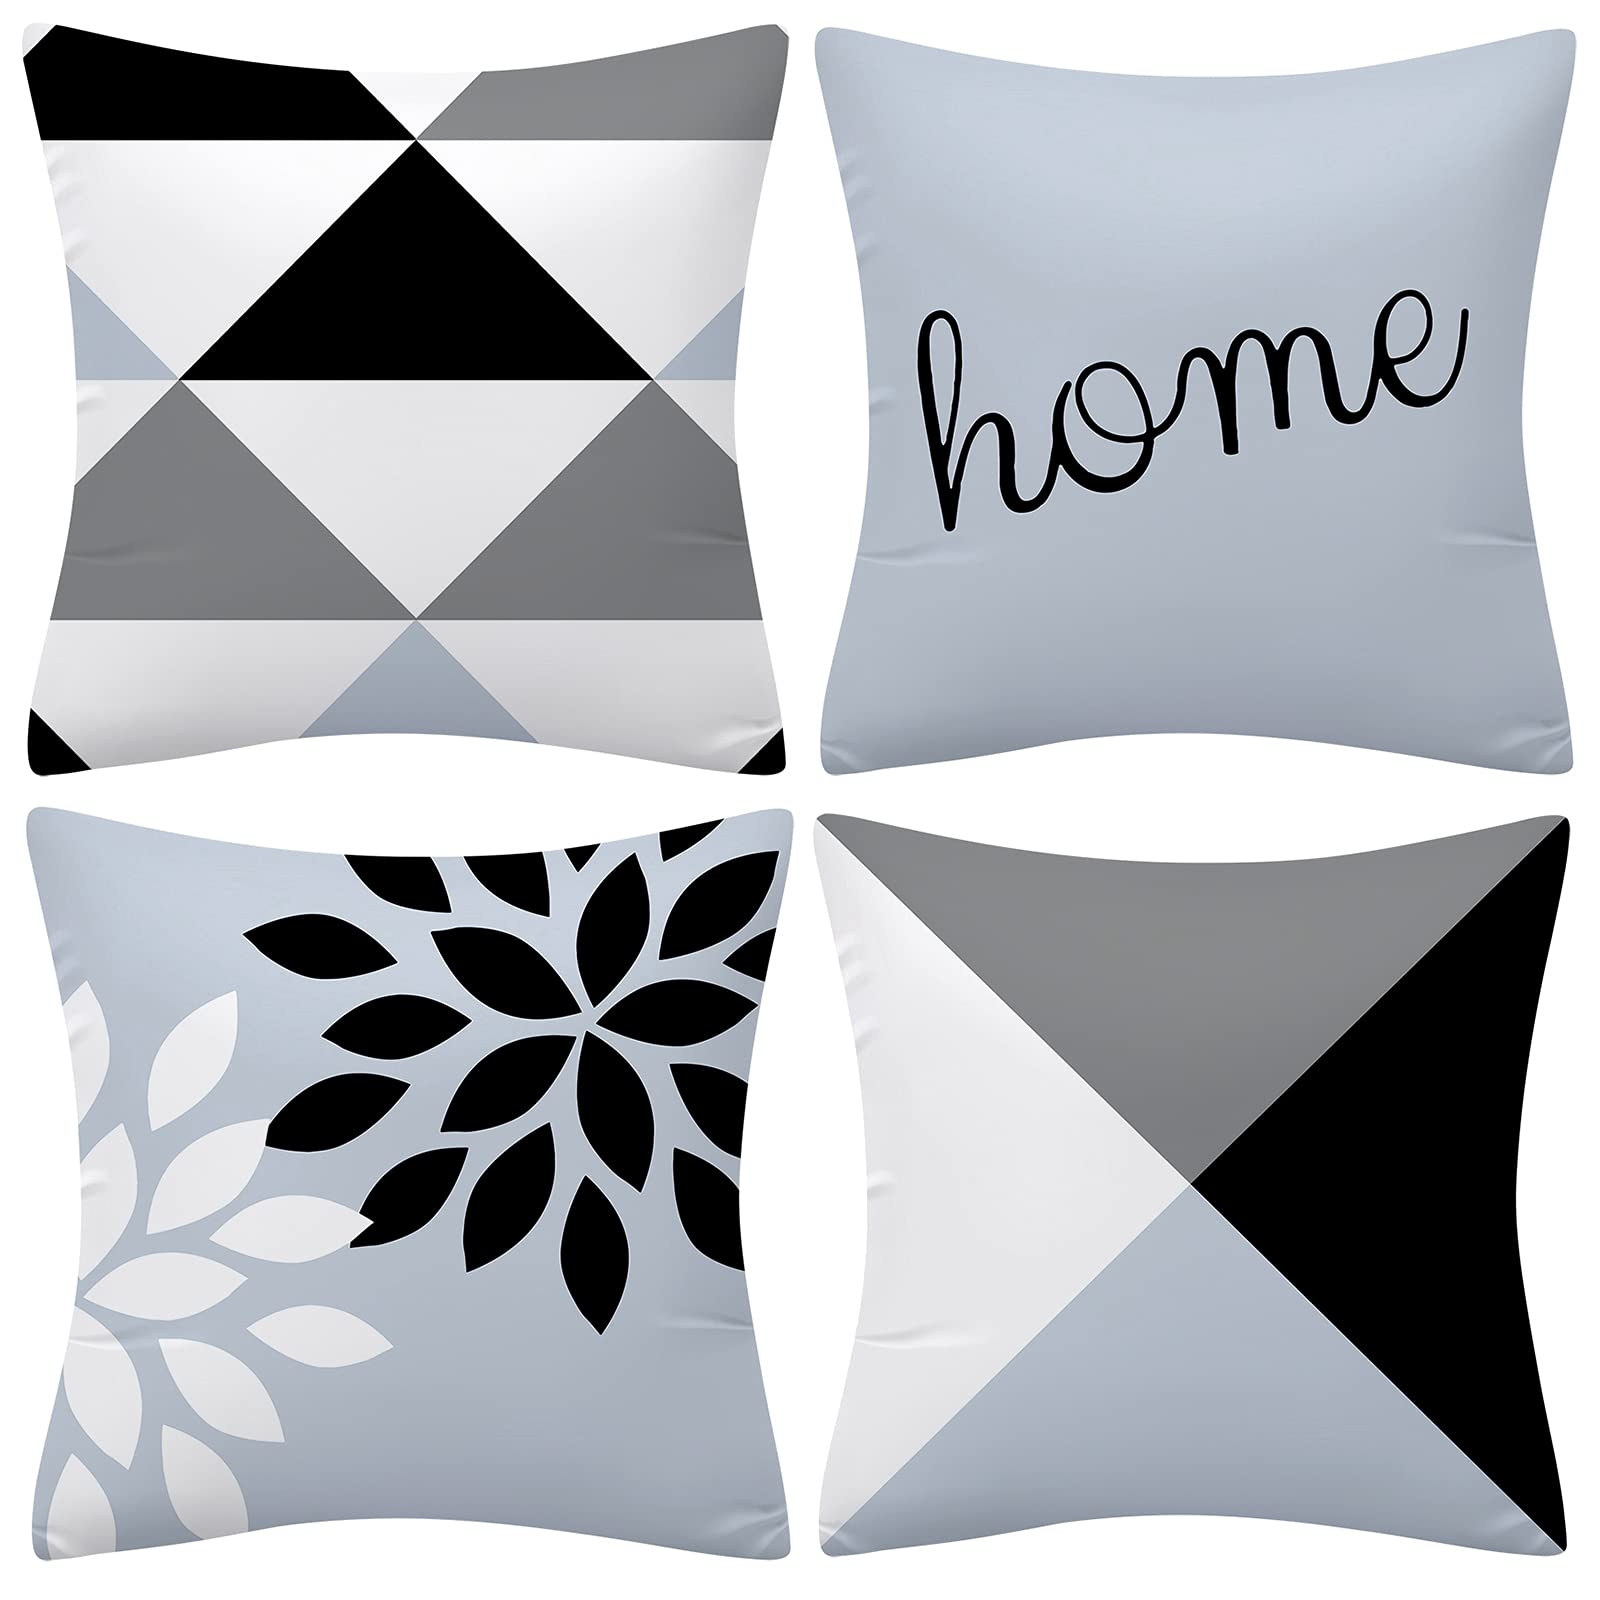 UINI Modern Decorative Throw Pillow Covers Light Blue and Grey Geometric Pillow